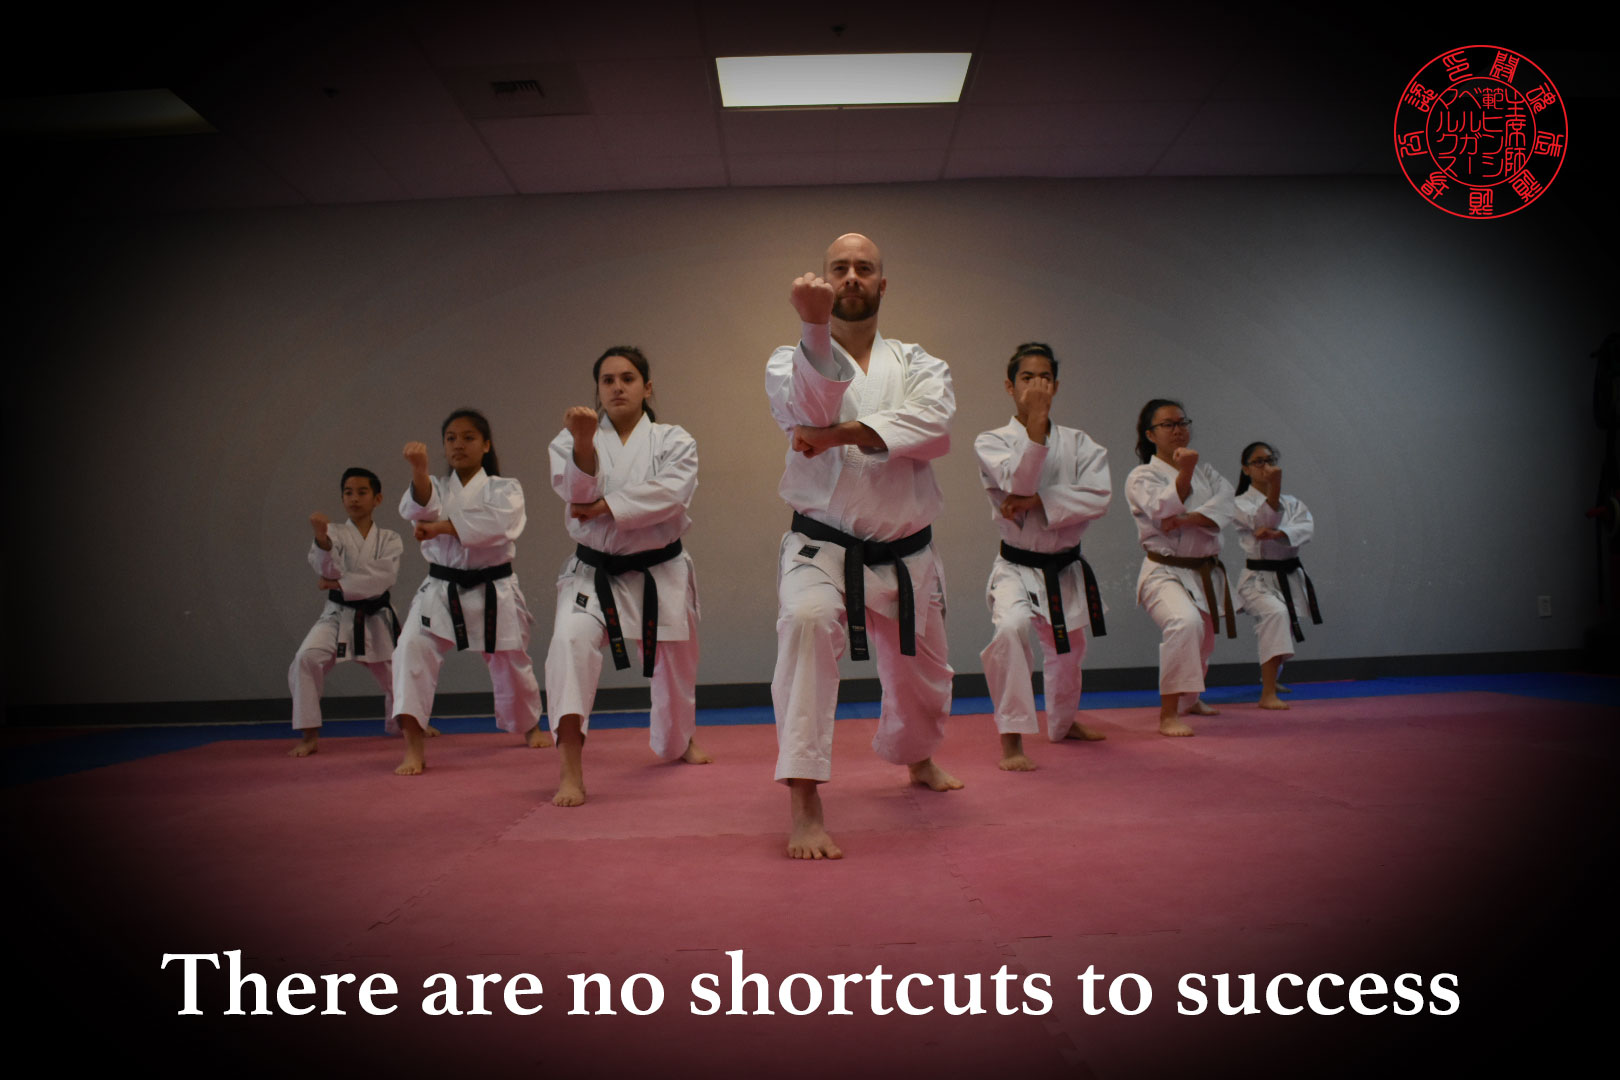 There are no shortcuts to success